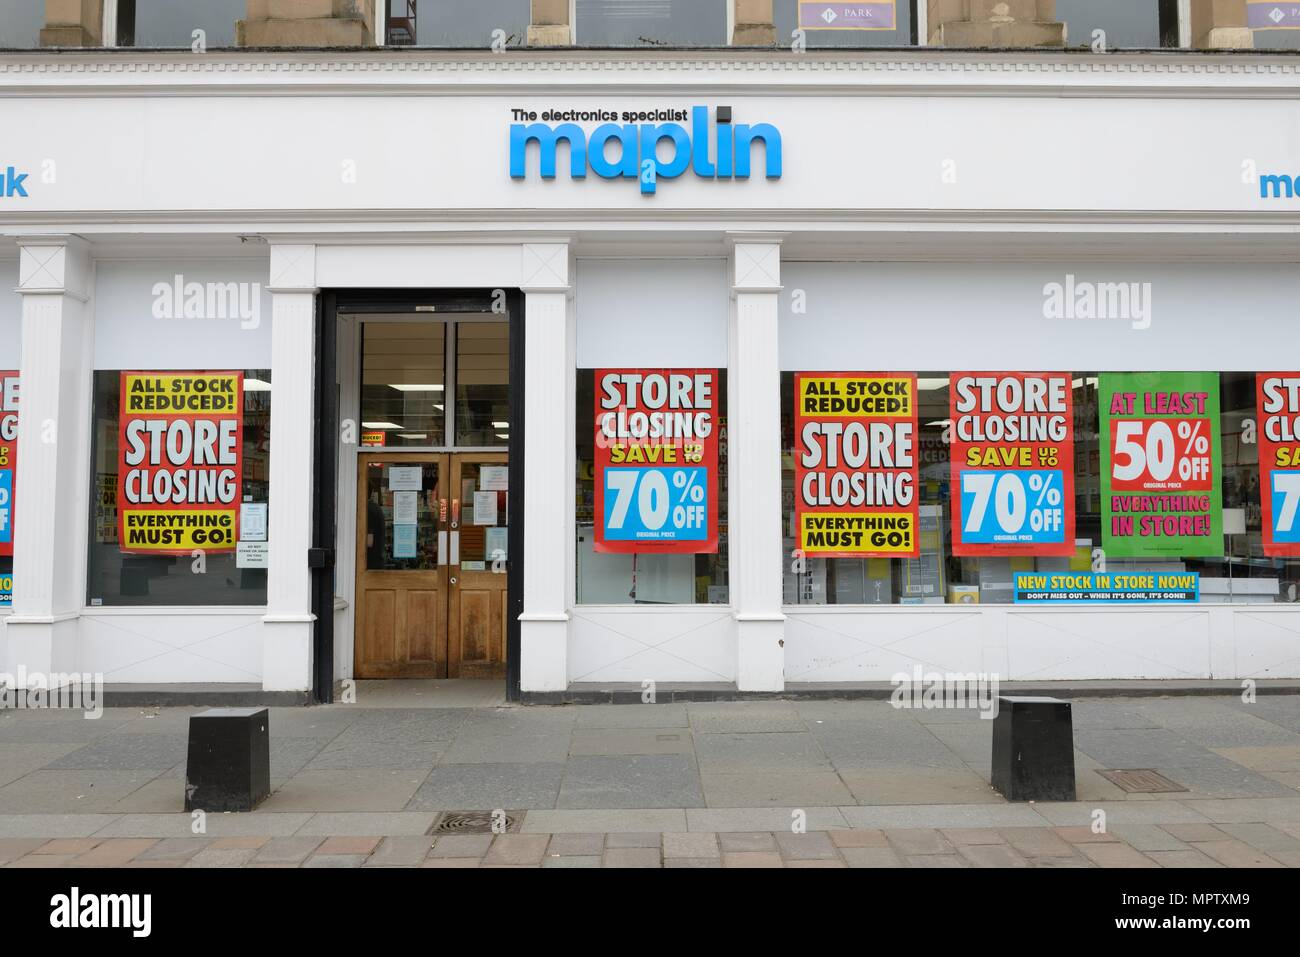 Maplins electronics specialist store showing 'Store closing' reduction posters in shop windows in St Enoch Square, Glasgow, Scotland, UK - Stock Image